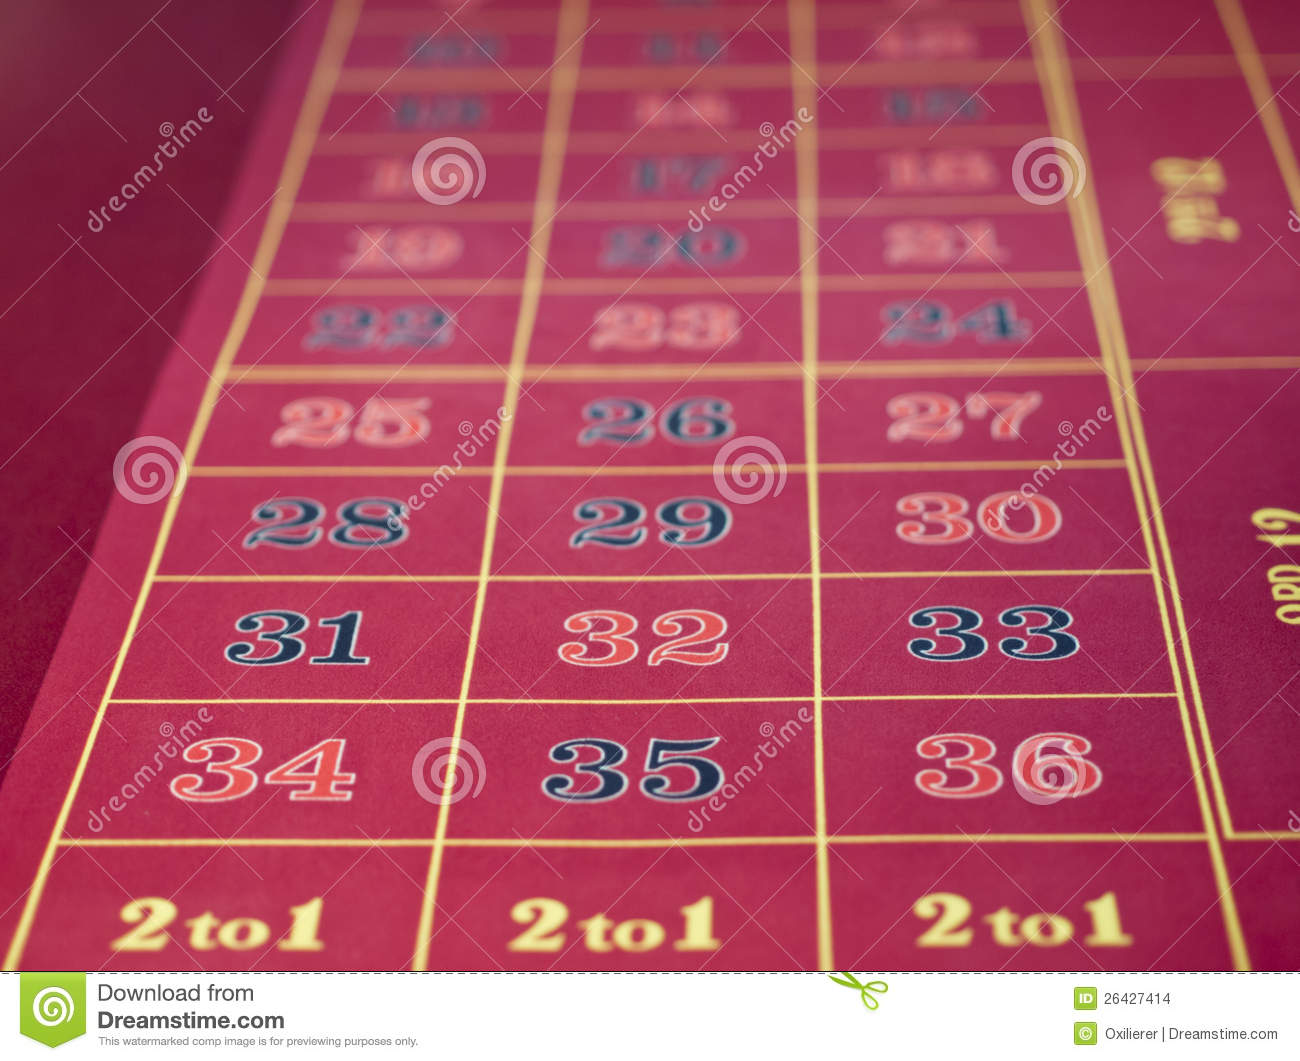 Details of gambling